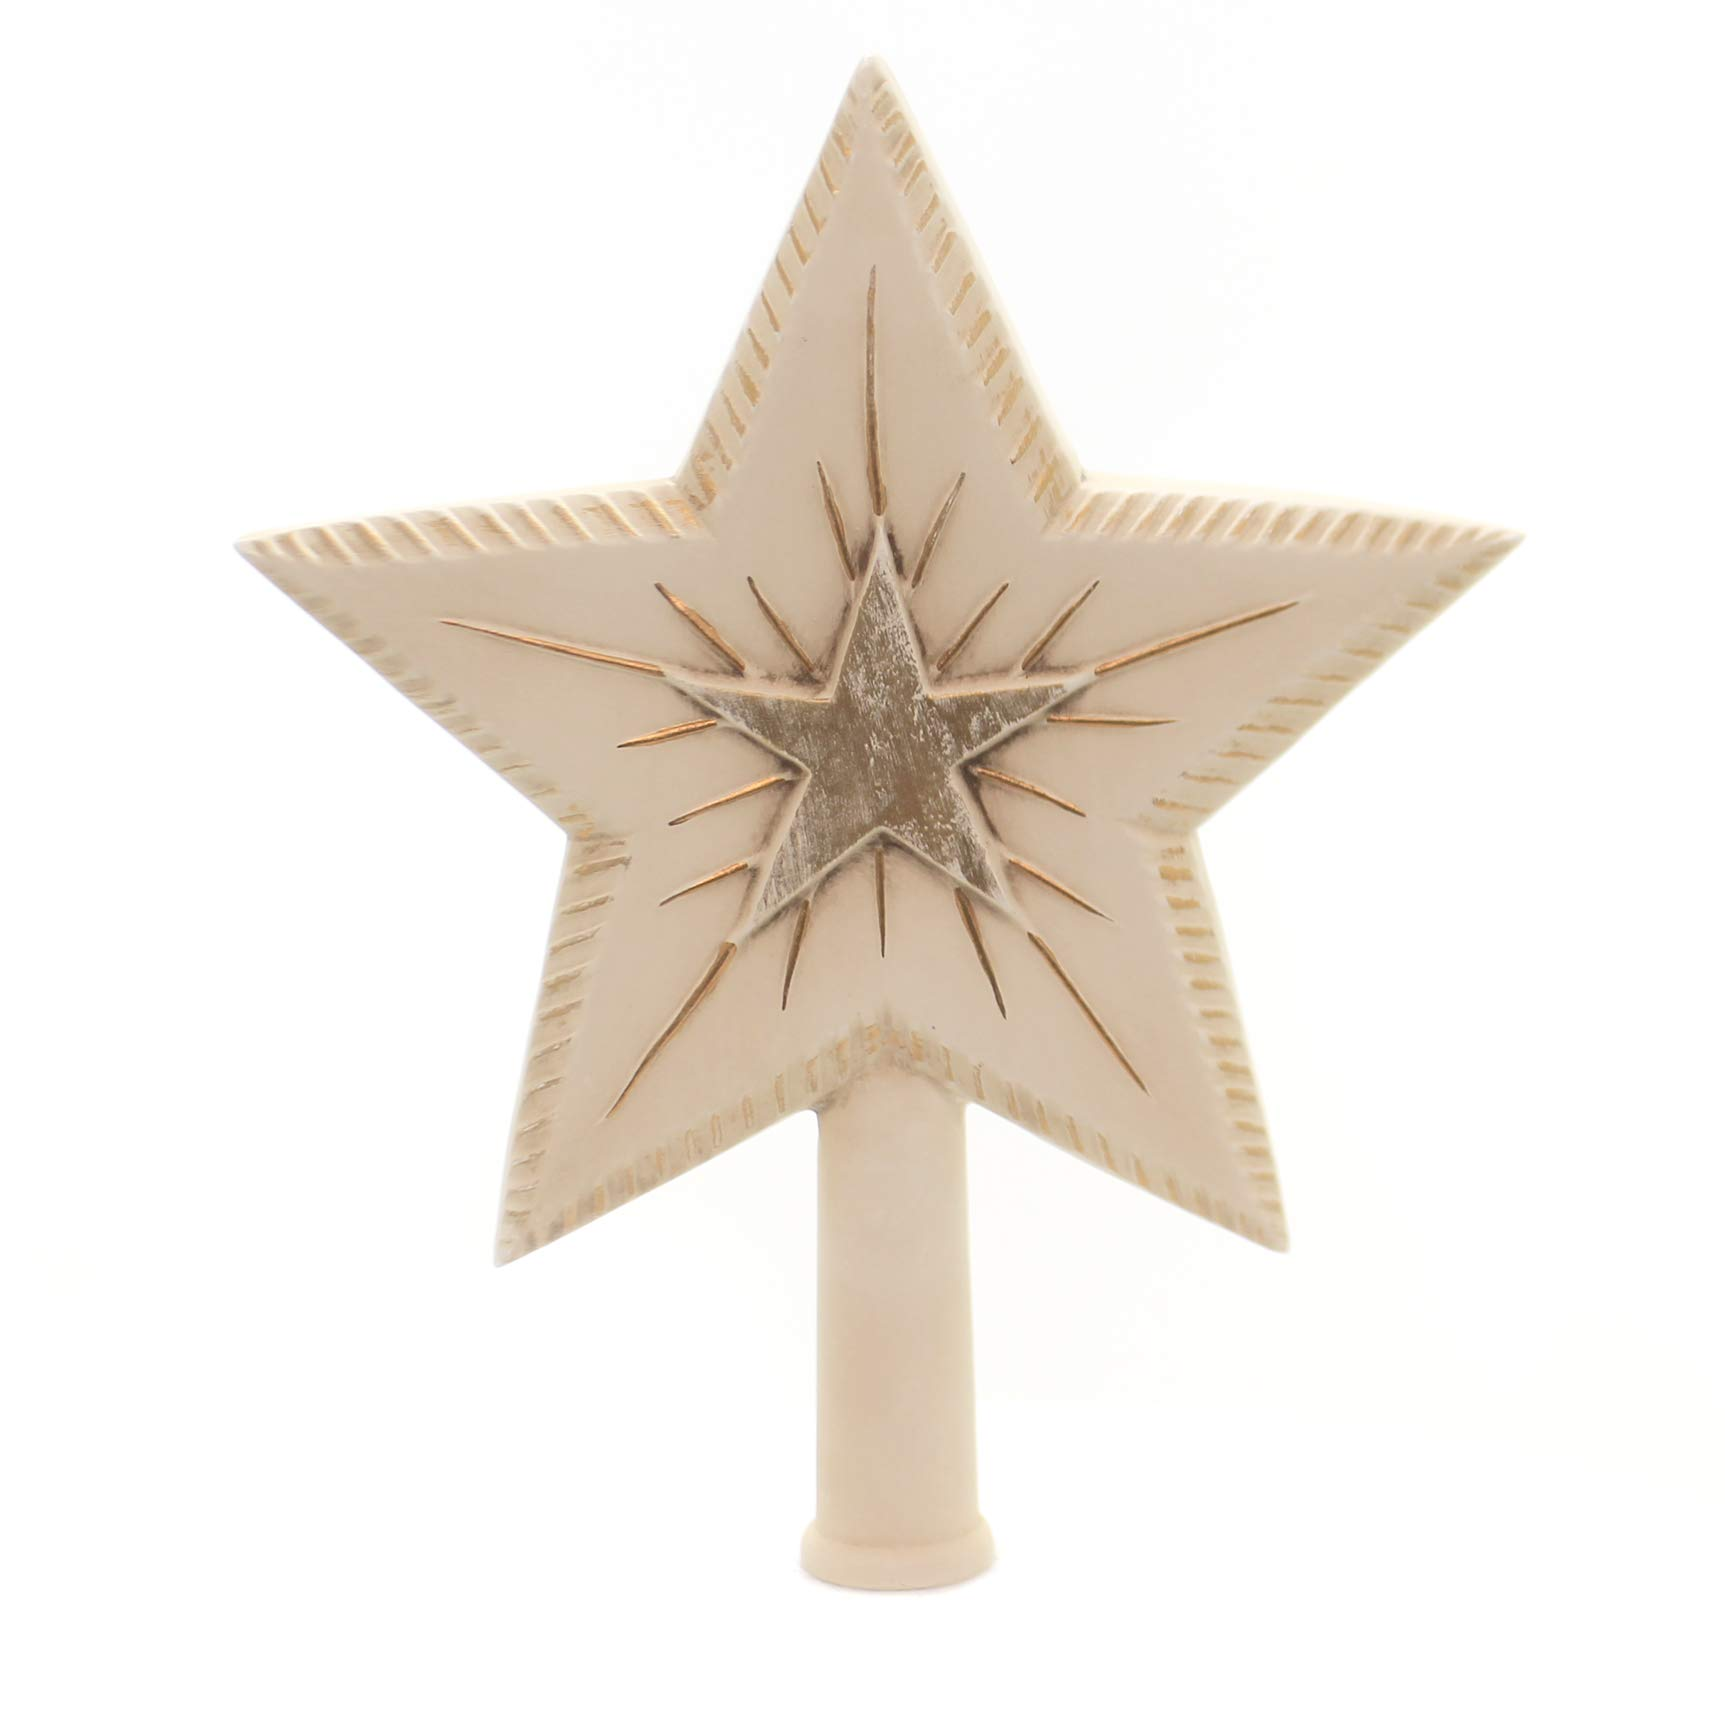 Marolin Big Binary Star - Antique White Paper Mache Treetopper Finial 200316